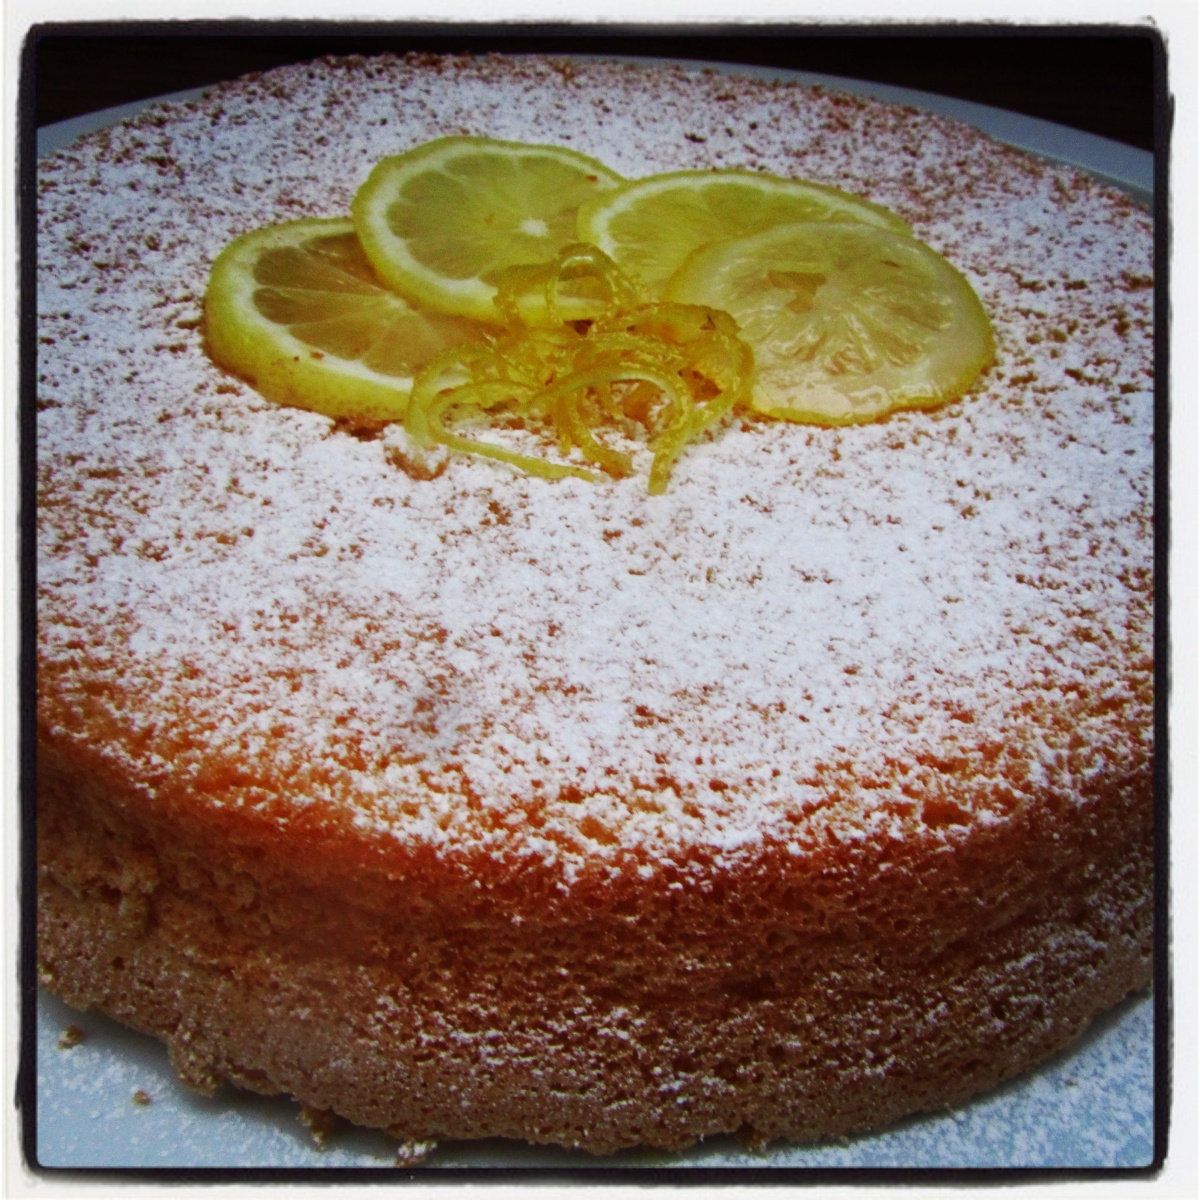 White caprese cake with Limoncello, the Capri's cake